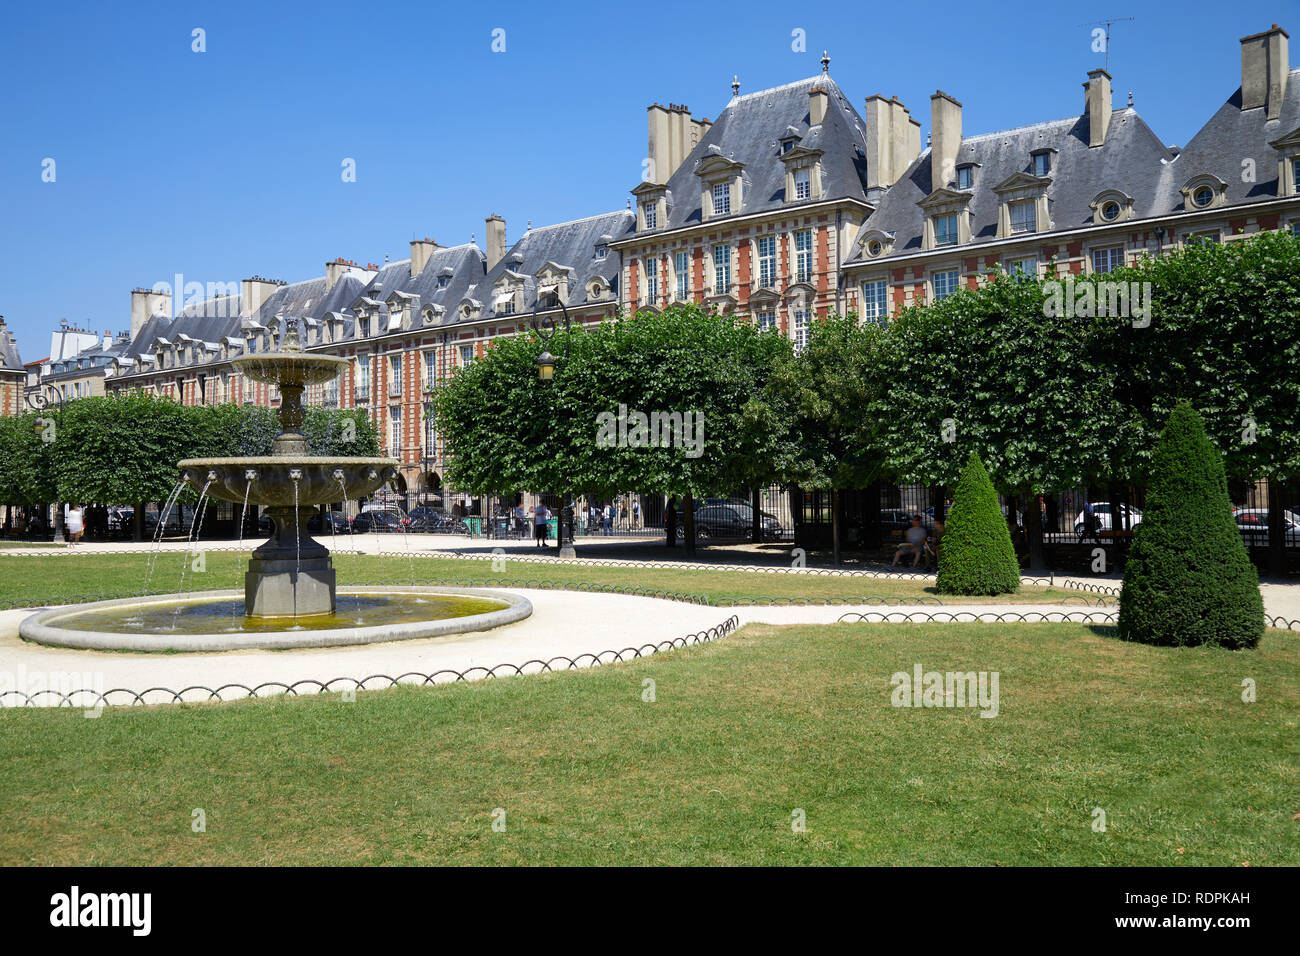 Place des Vosges, ancient buildings and garden in Paris in a sunny summer day, clear blue sky Stock Photo